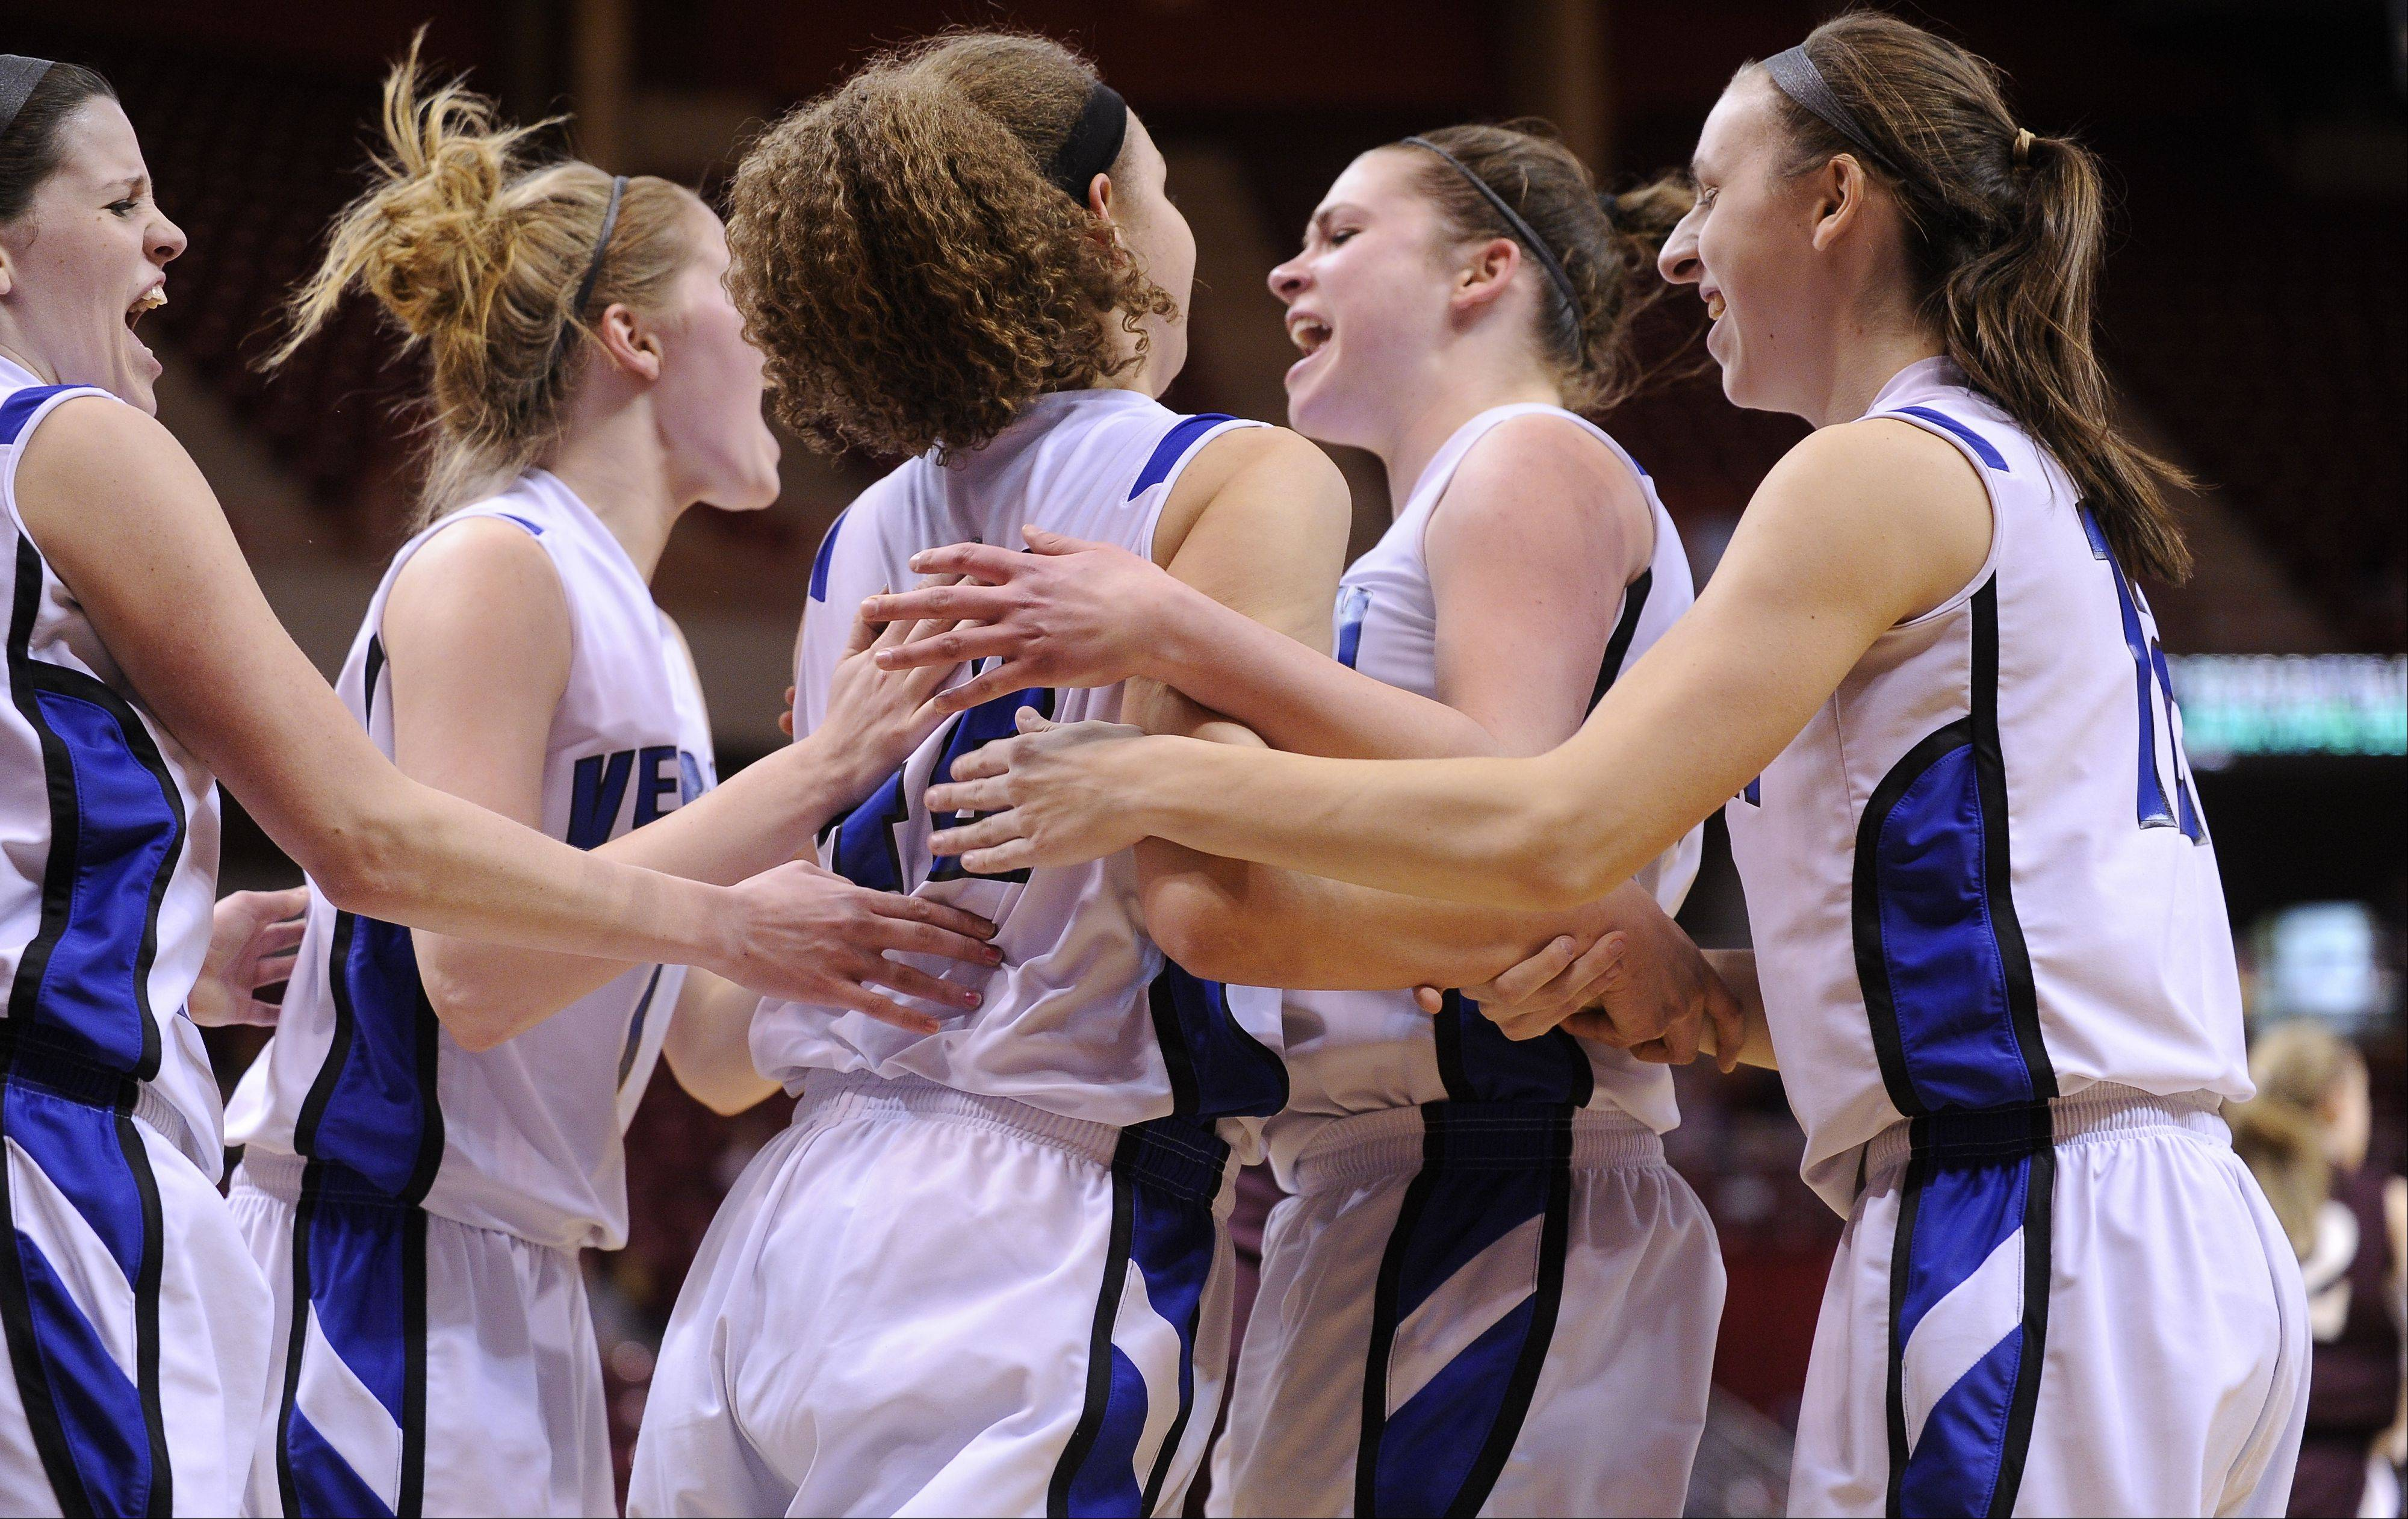 Images from the Vernon Hills vs. Montini Class 3A state girls basketball championship game at Redbird Arena on Saturday, March 3 in Normal.